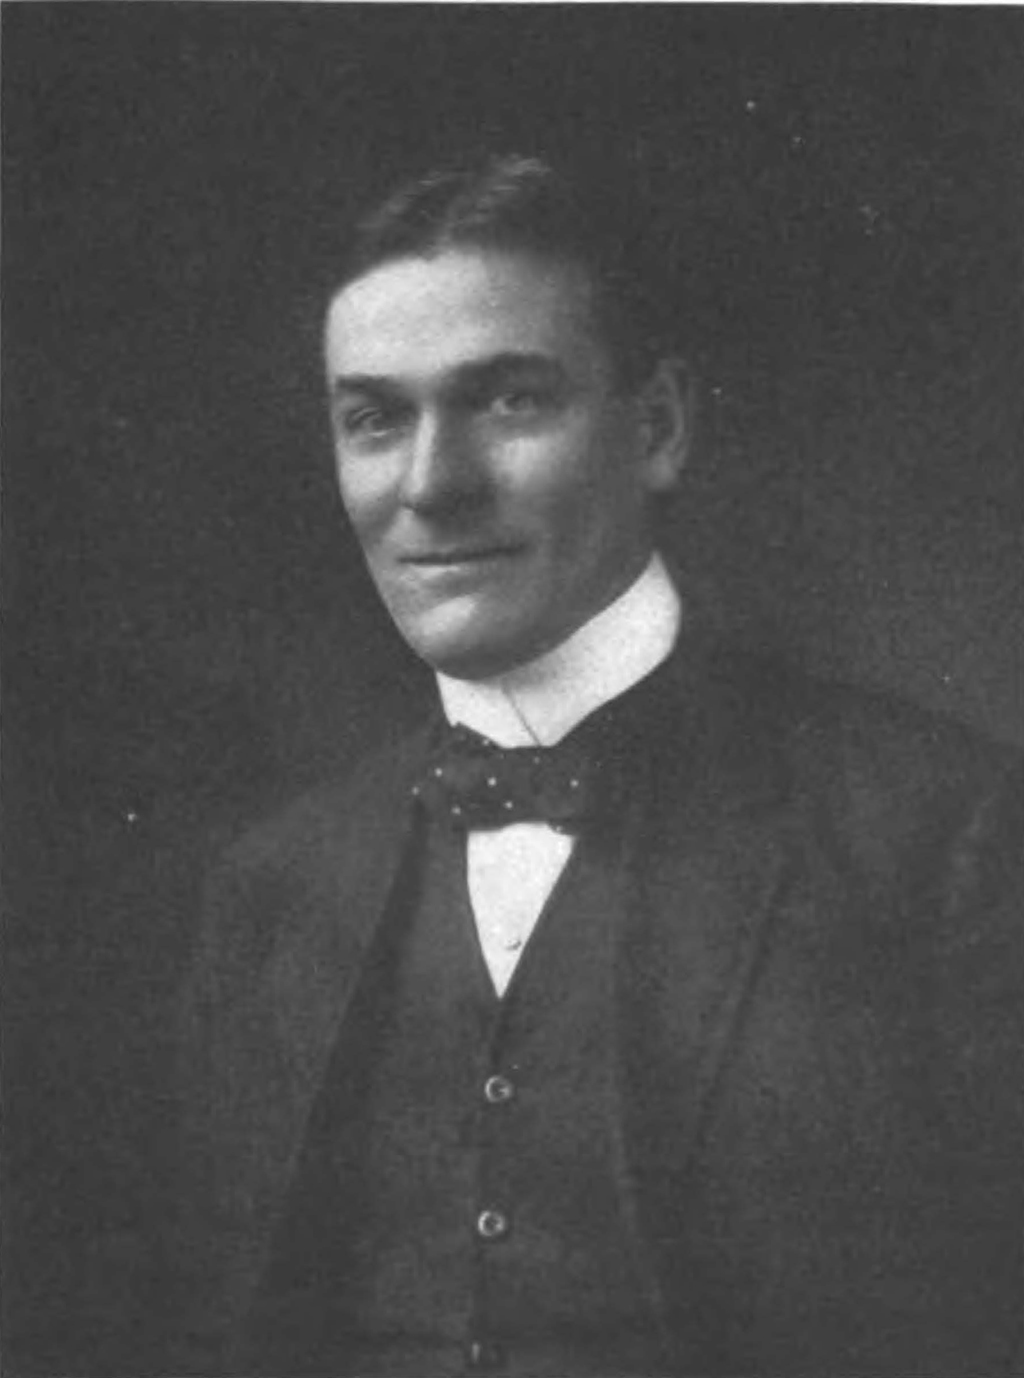 Arthur S. Allen, sales manager for Philip Ruxton, Inc. (1911).